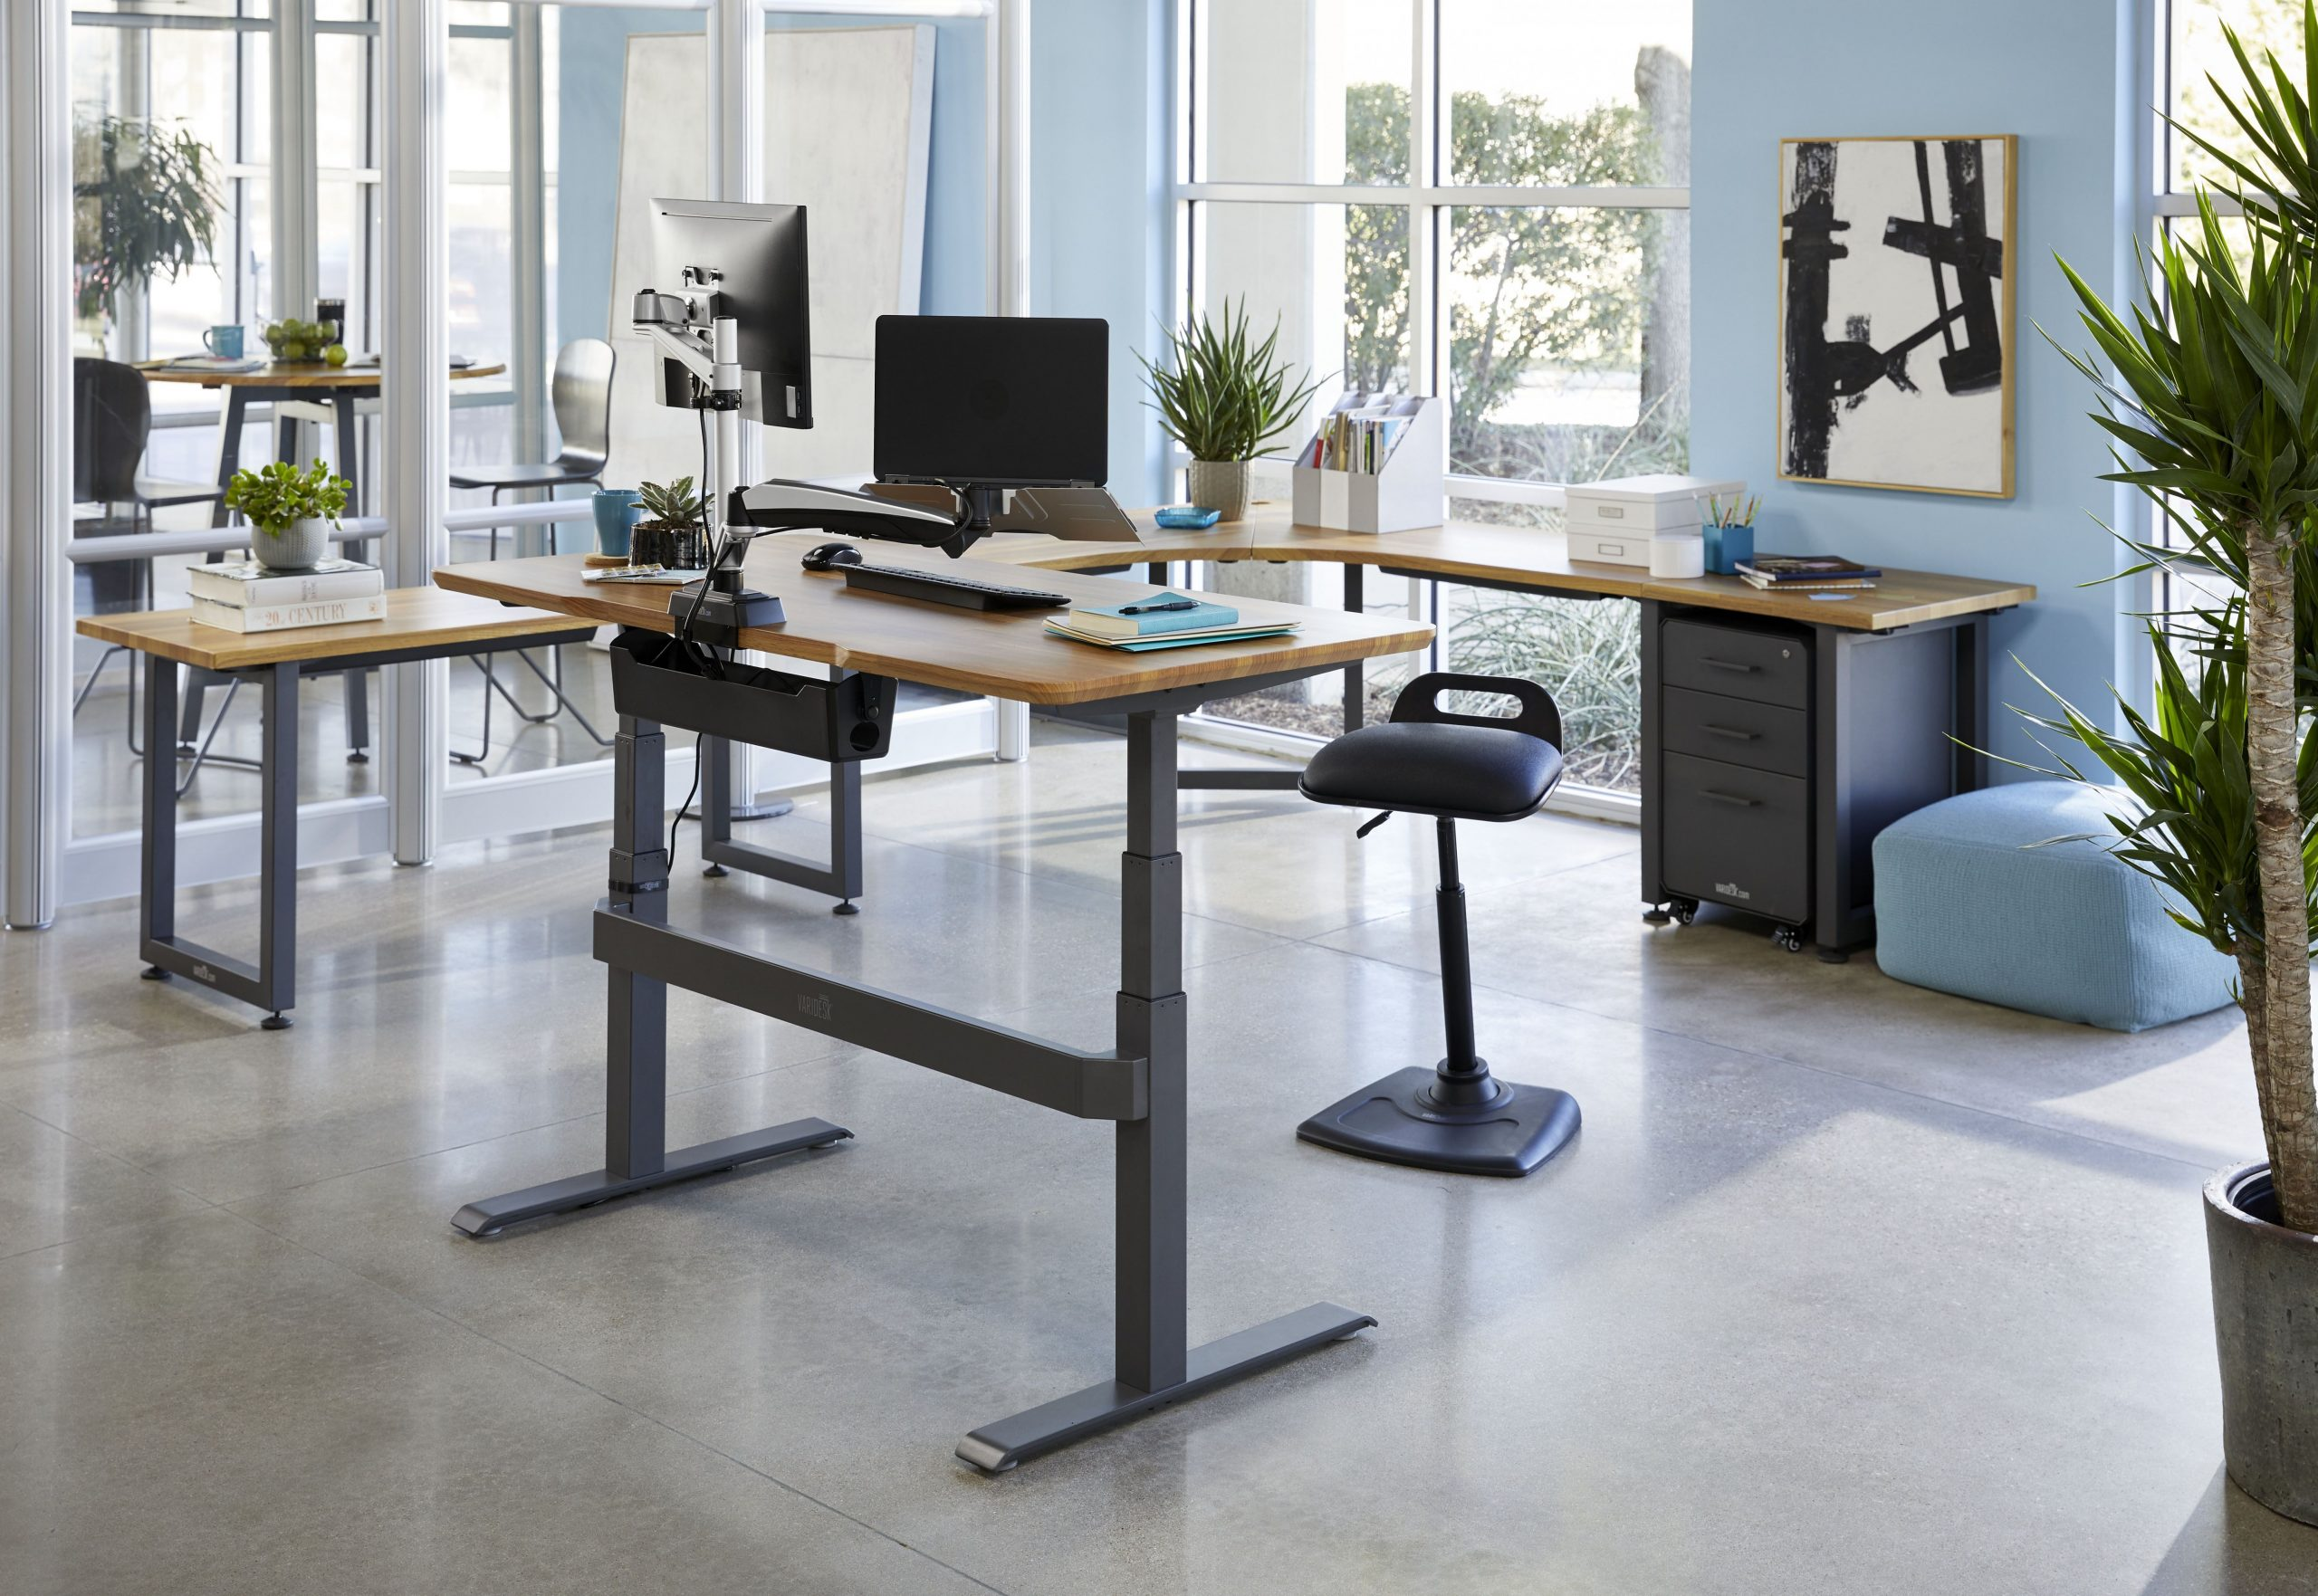 Flexible Office Design + Standing Desk Inspiration  Living space  - Home Office Ideas With Standing Desk